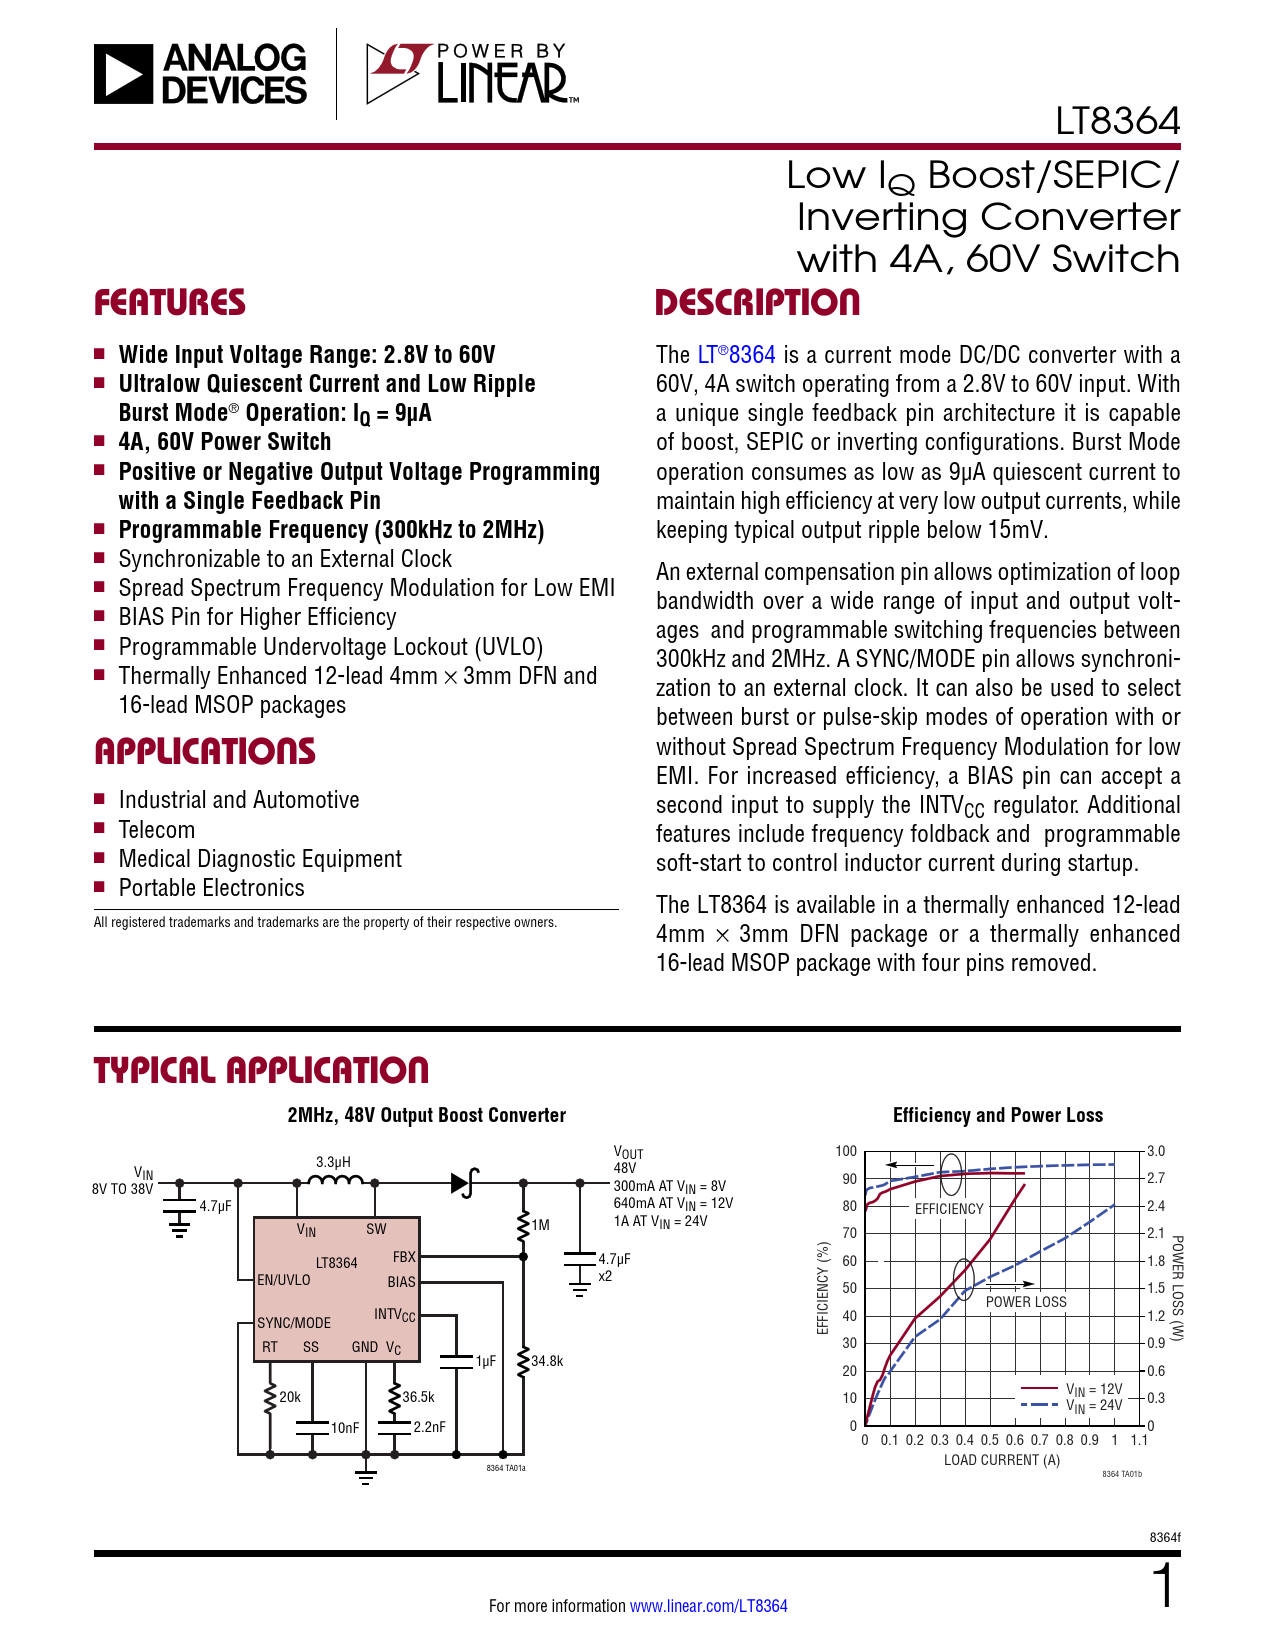 Datasheet LT8364 Analog Devices